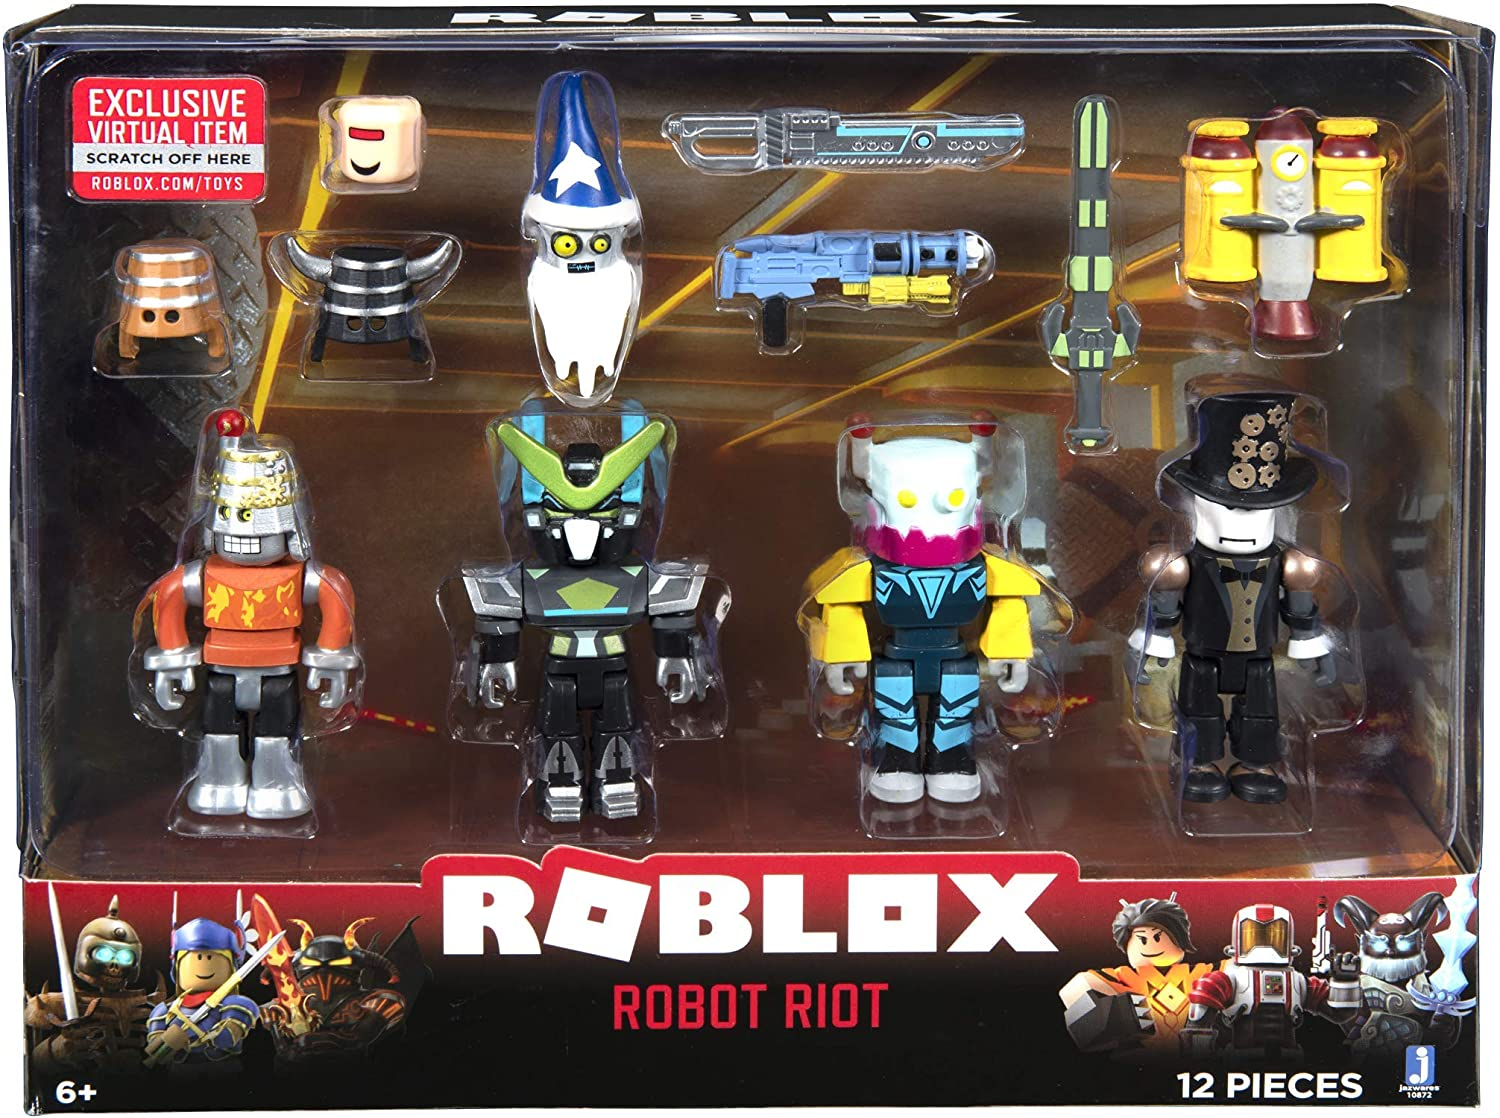 Robot Model Roblox Amazon Com Roblox Action Collection Robot Riot Four Figure Pack Includes Exclusive Virtual Item Toys Games